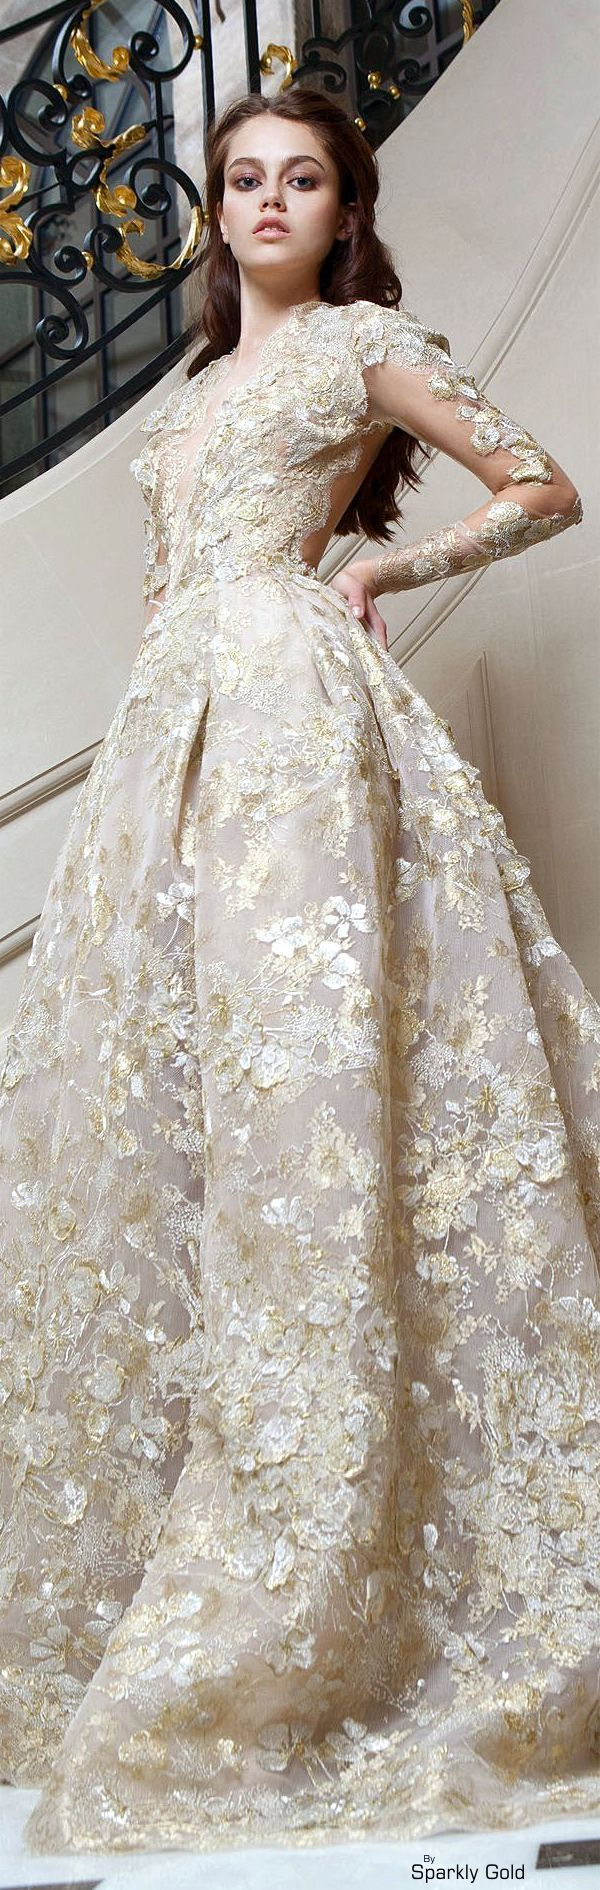 Featured is a long sleeve ball gown Wedding Dress fit for a queen. The detail on this incredible haute couture wedding dress is incredible. We can make bridal gowns like this for you at an affordable price. Get info at www.dariuscordell.com